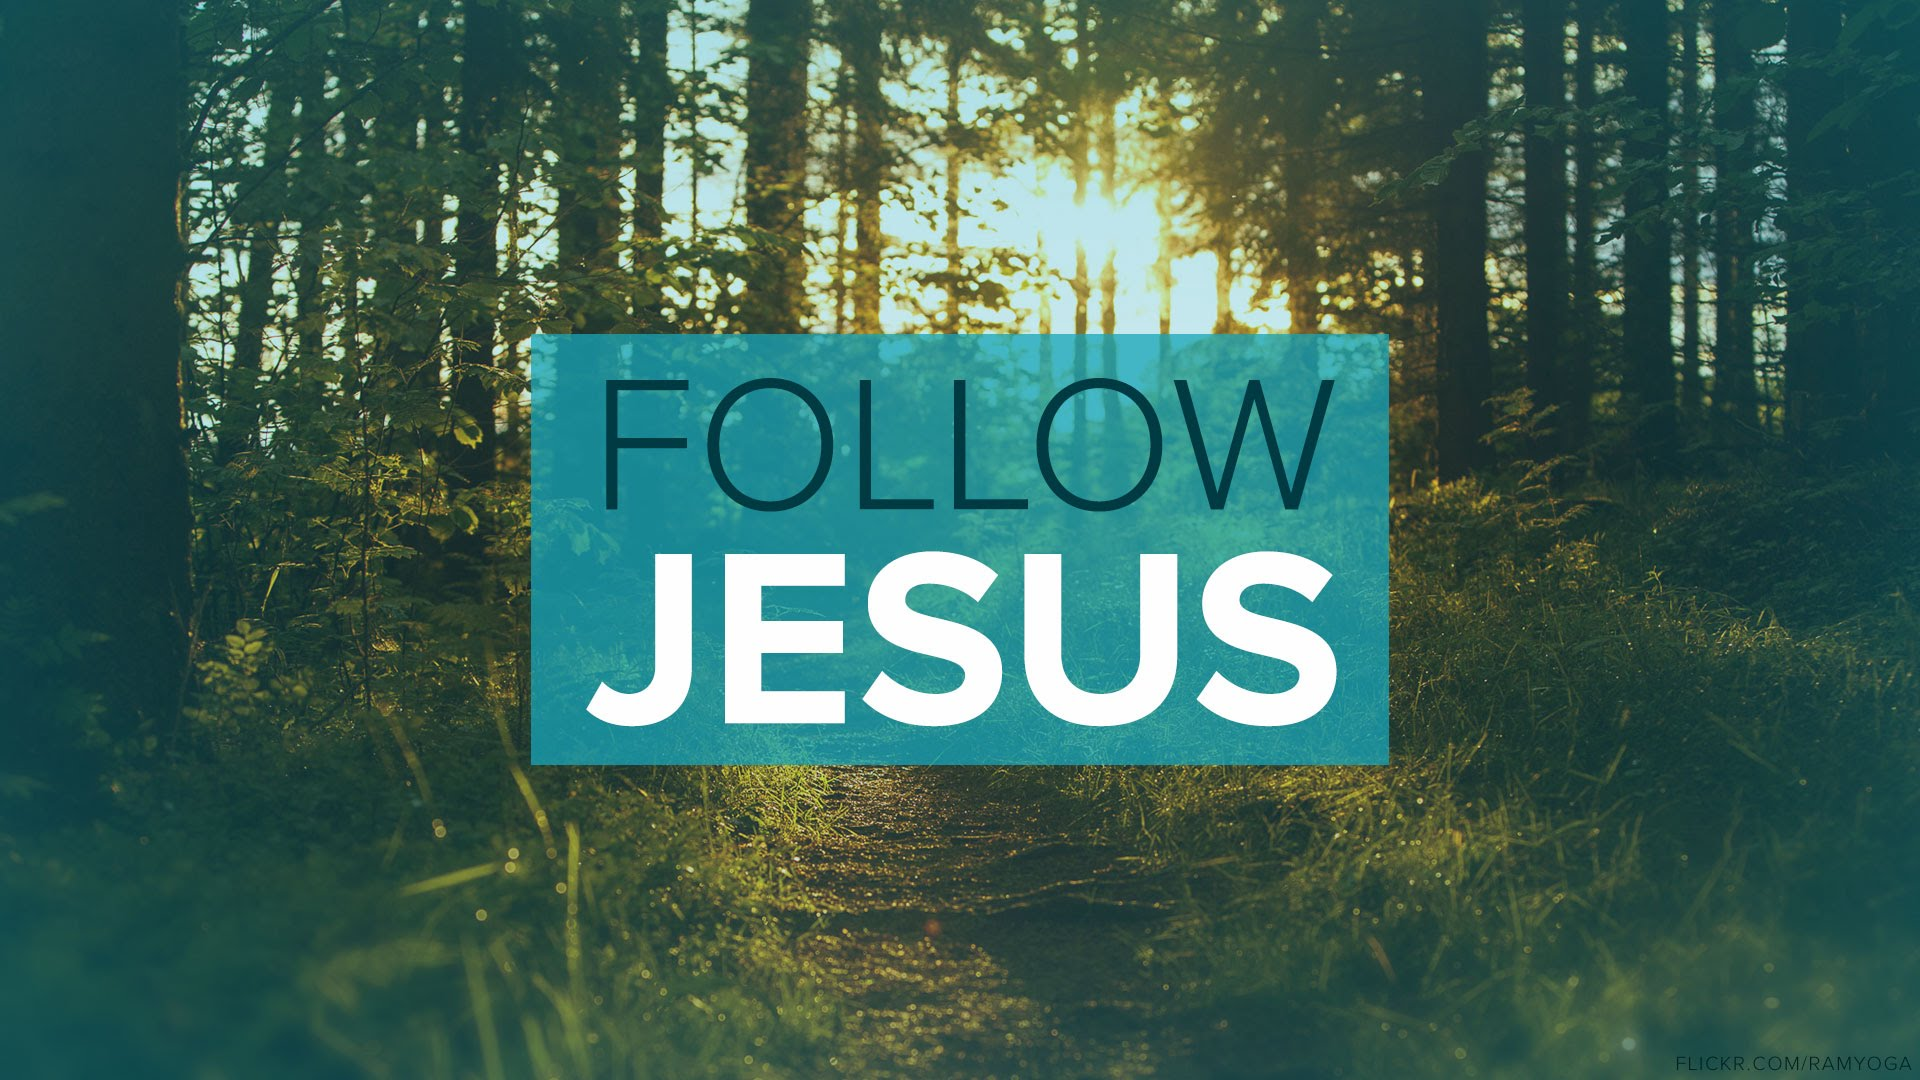 Need To Find YOUR Way Back To Christ?